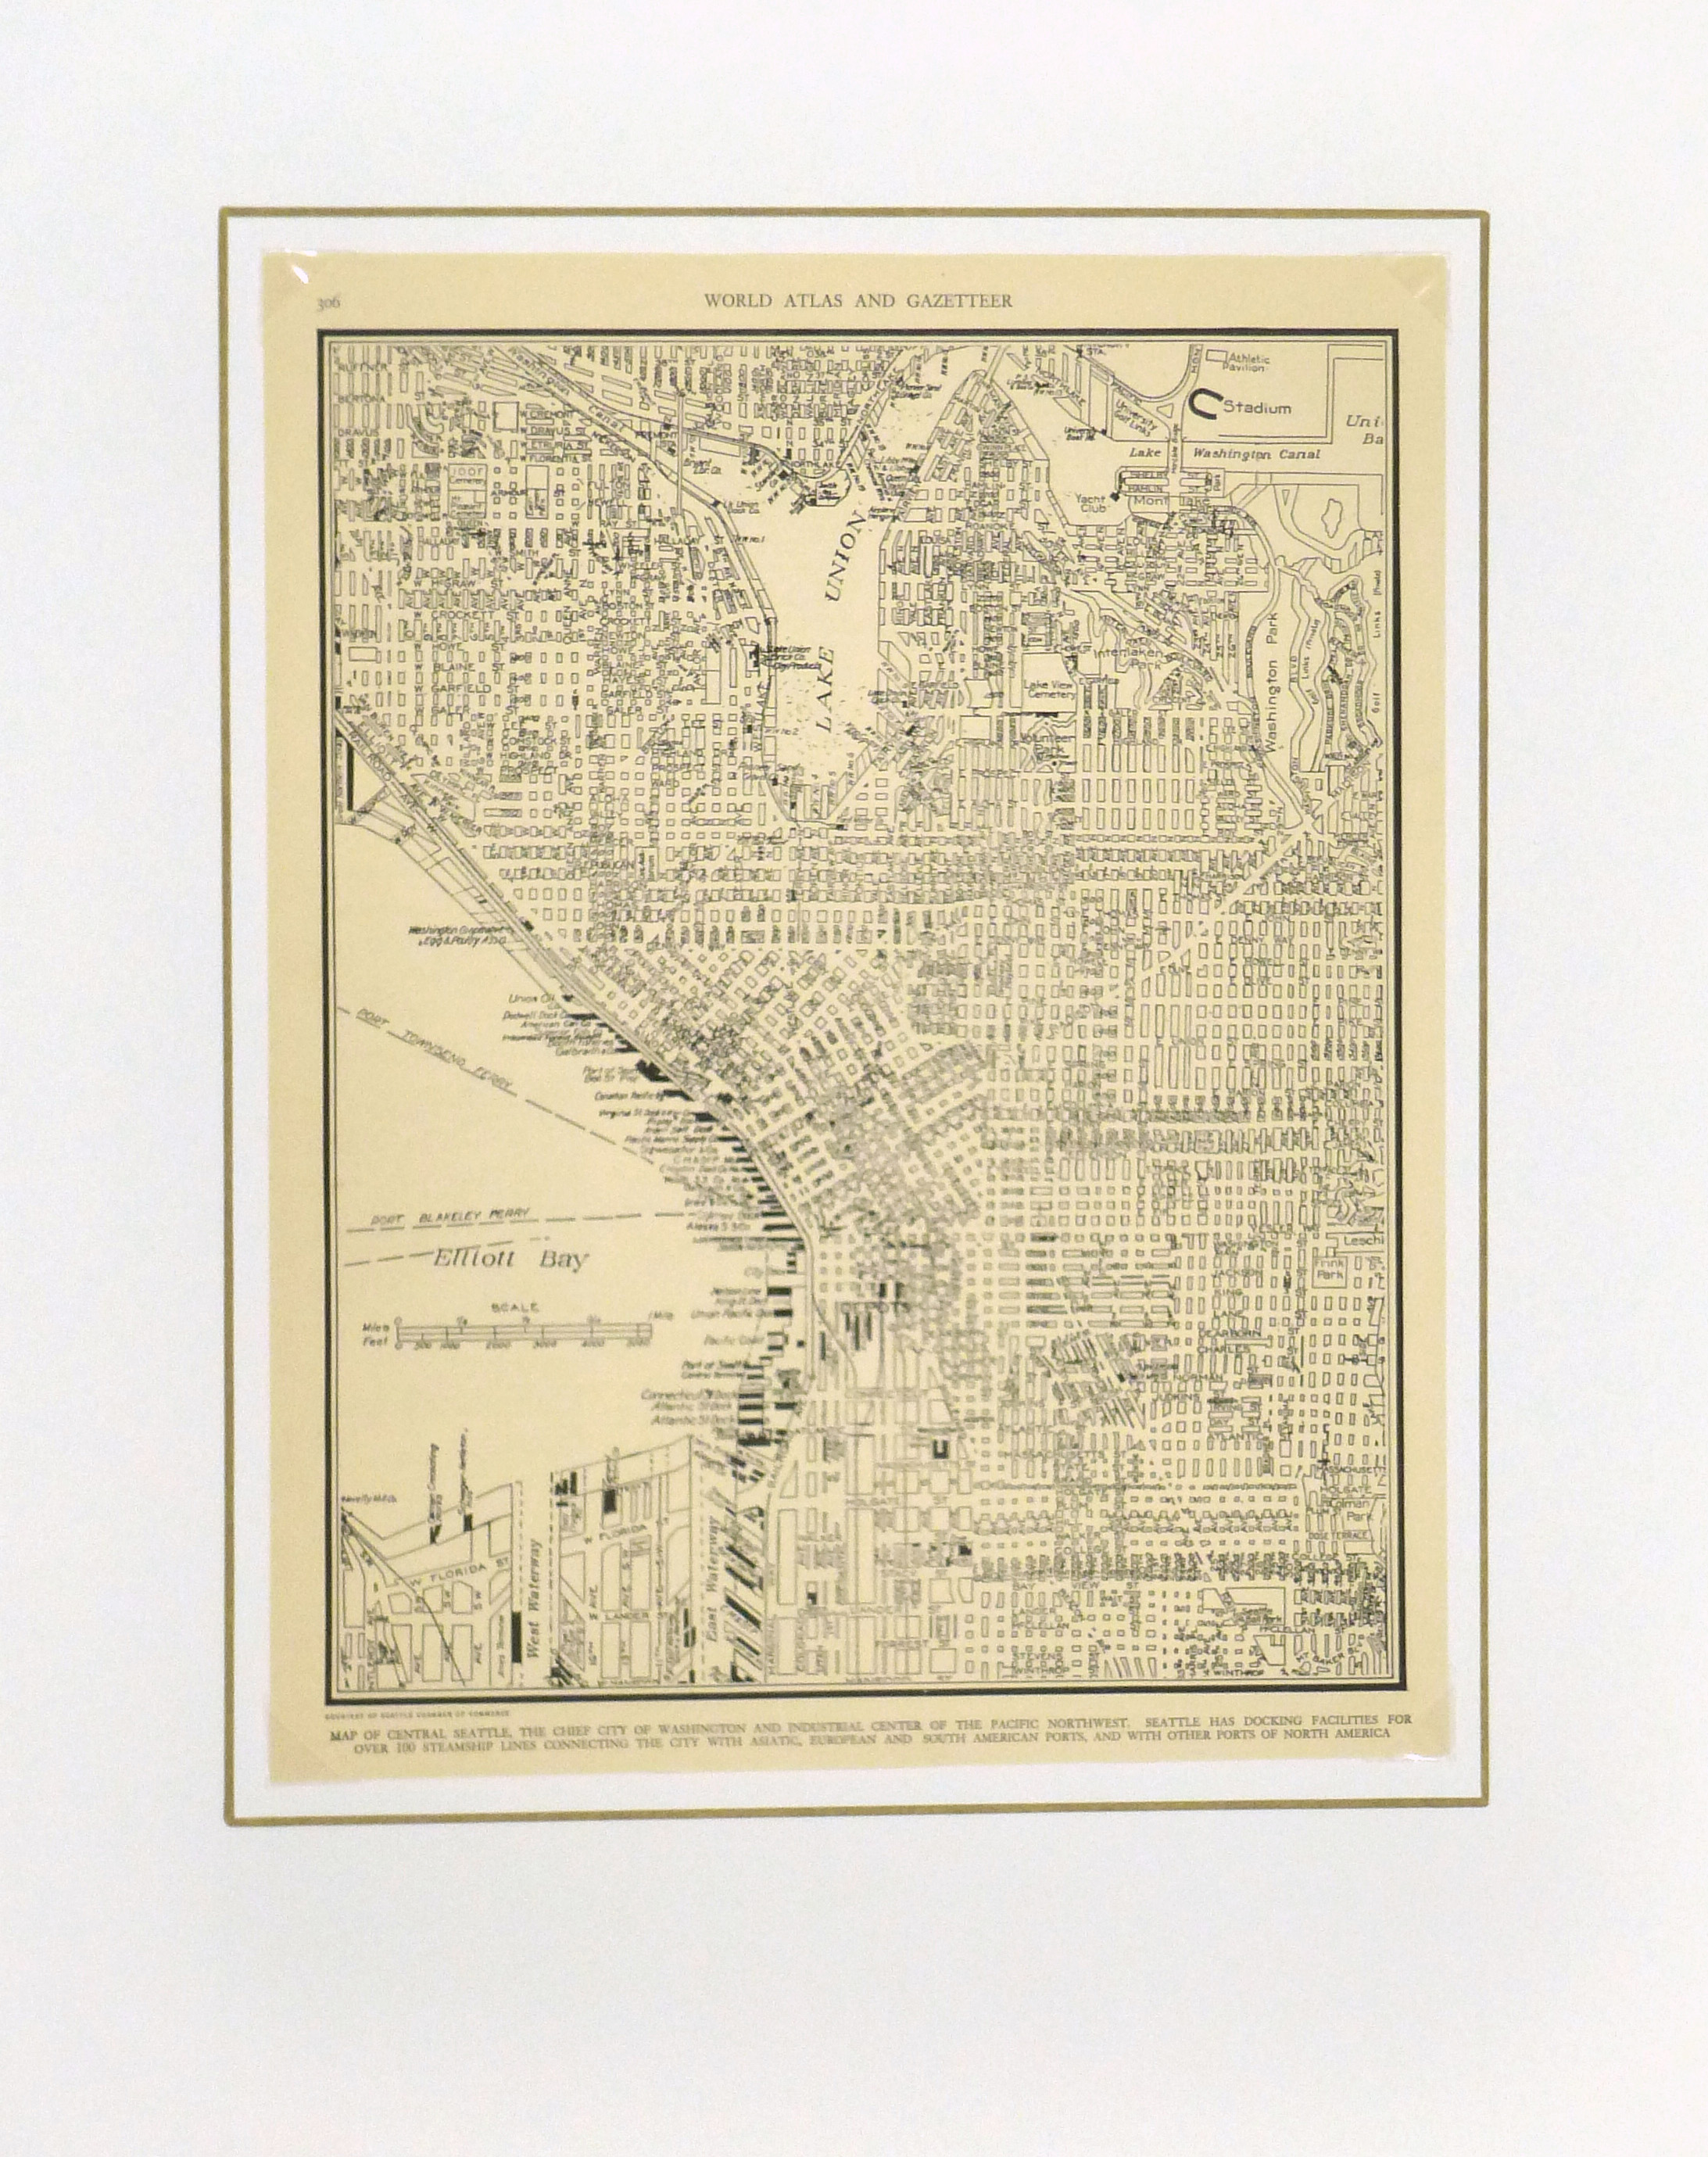 Central Seattle Map, 1937-matted-8673K